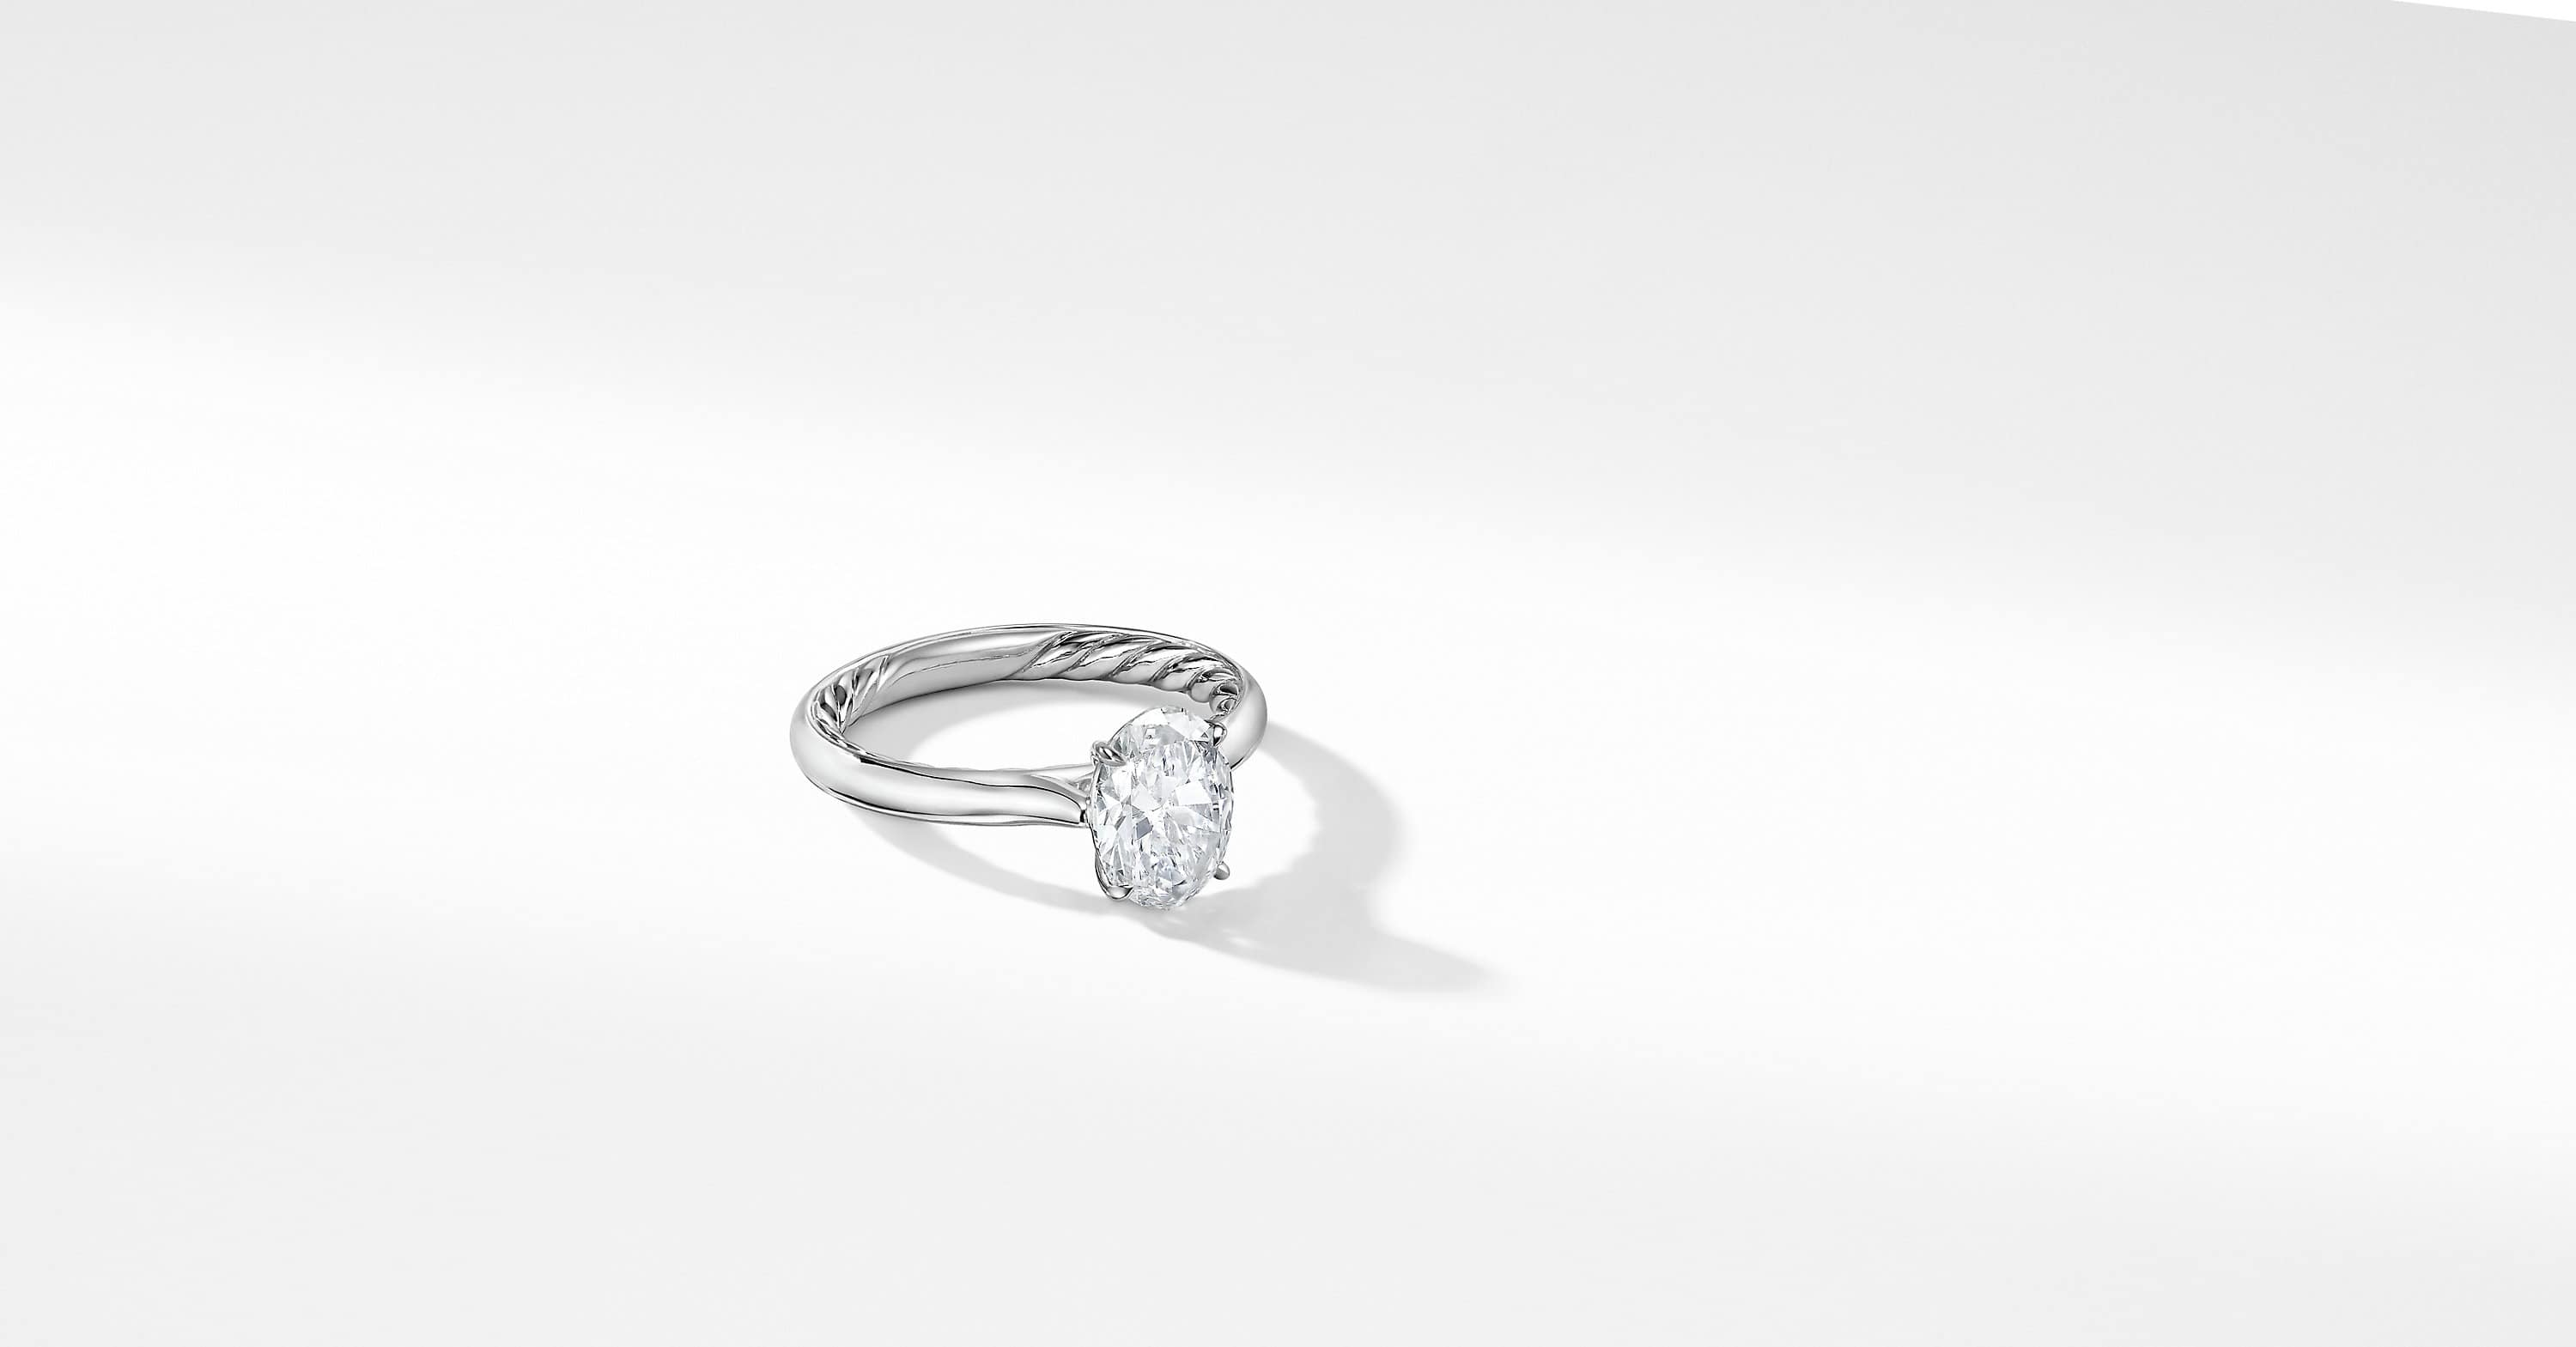 DY Eden Engagement Ring in Platinum, Oval